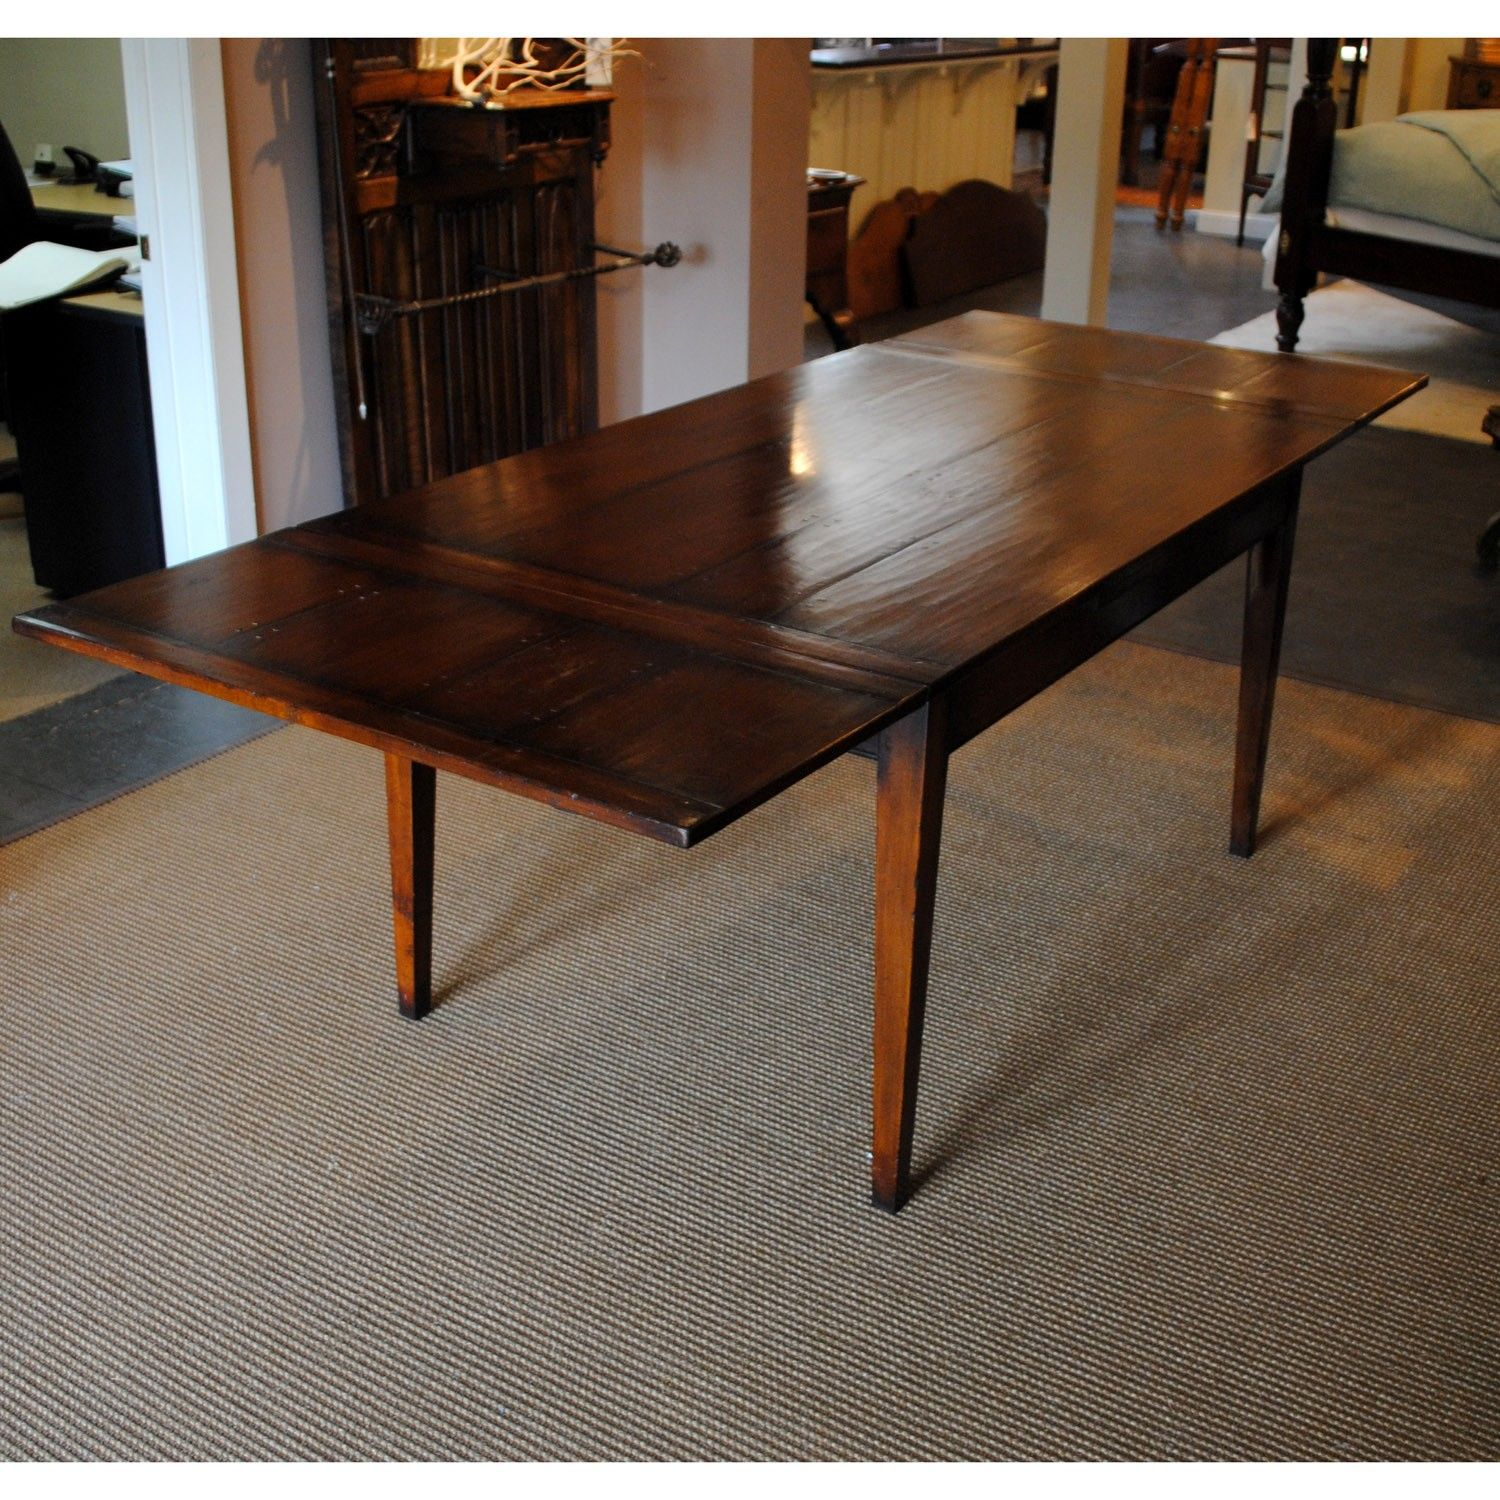 6 french tapered leg farmhouse table shown in reclaimed